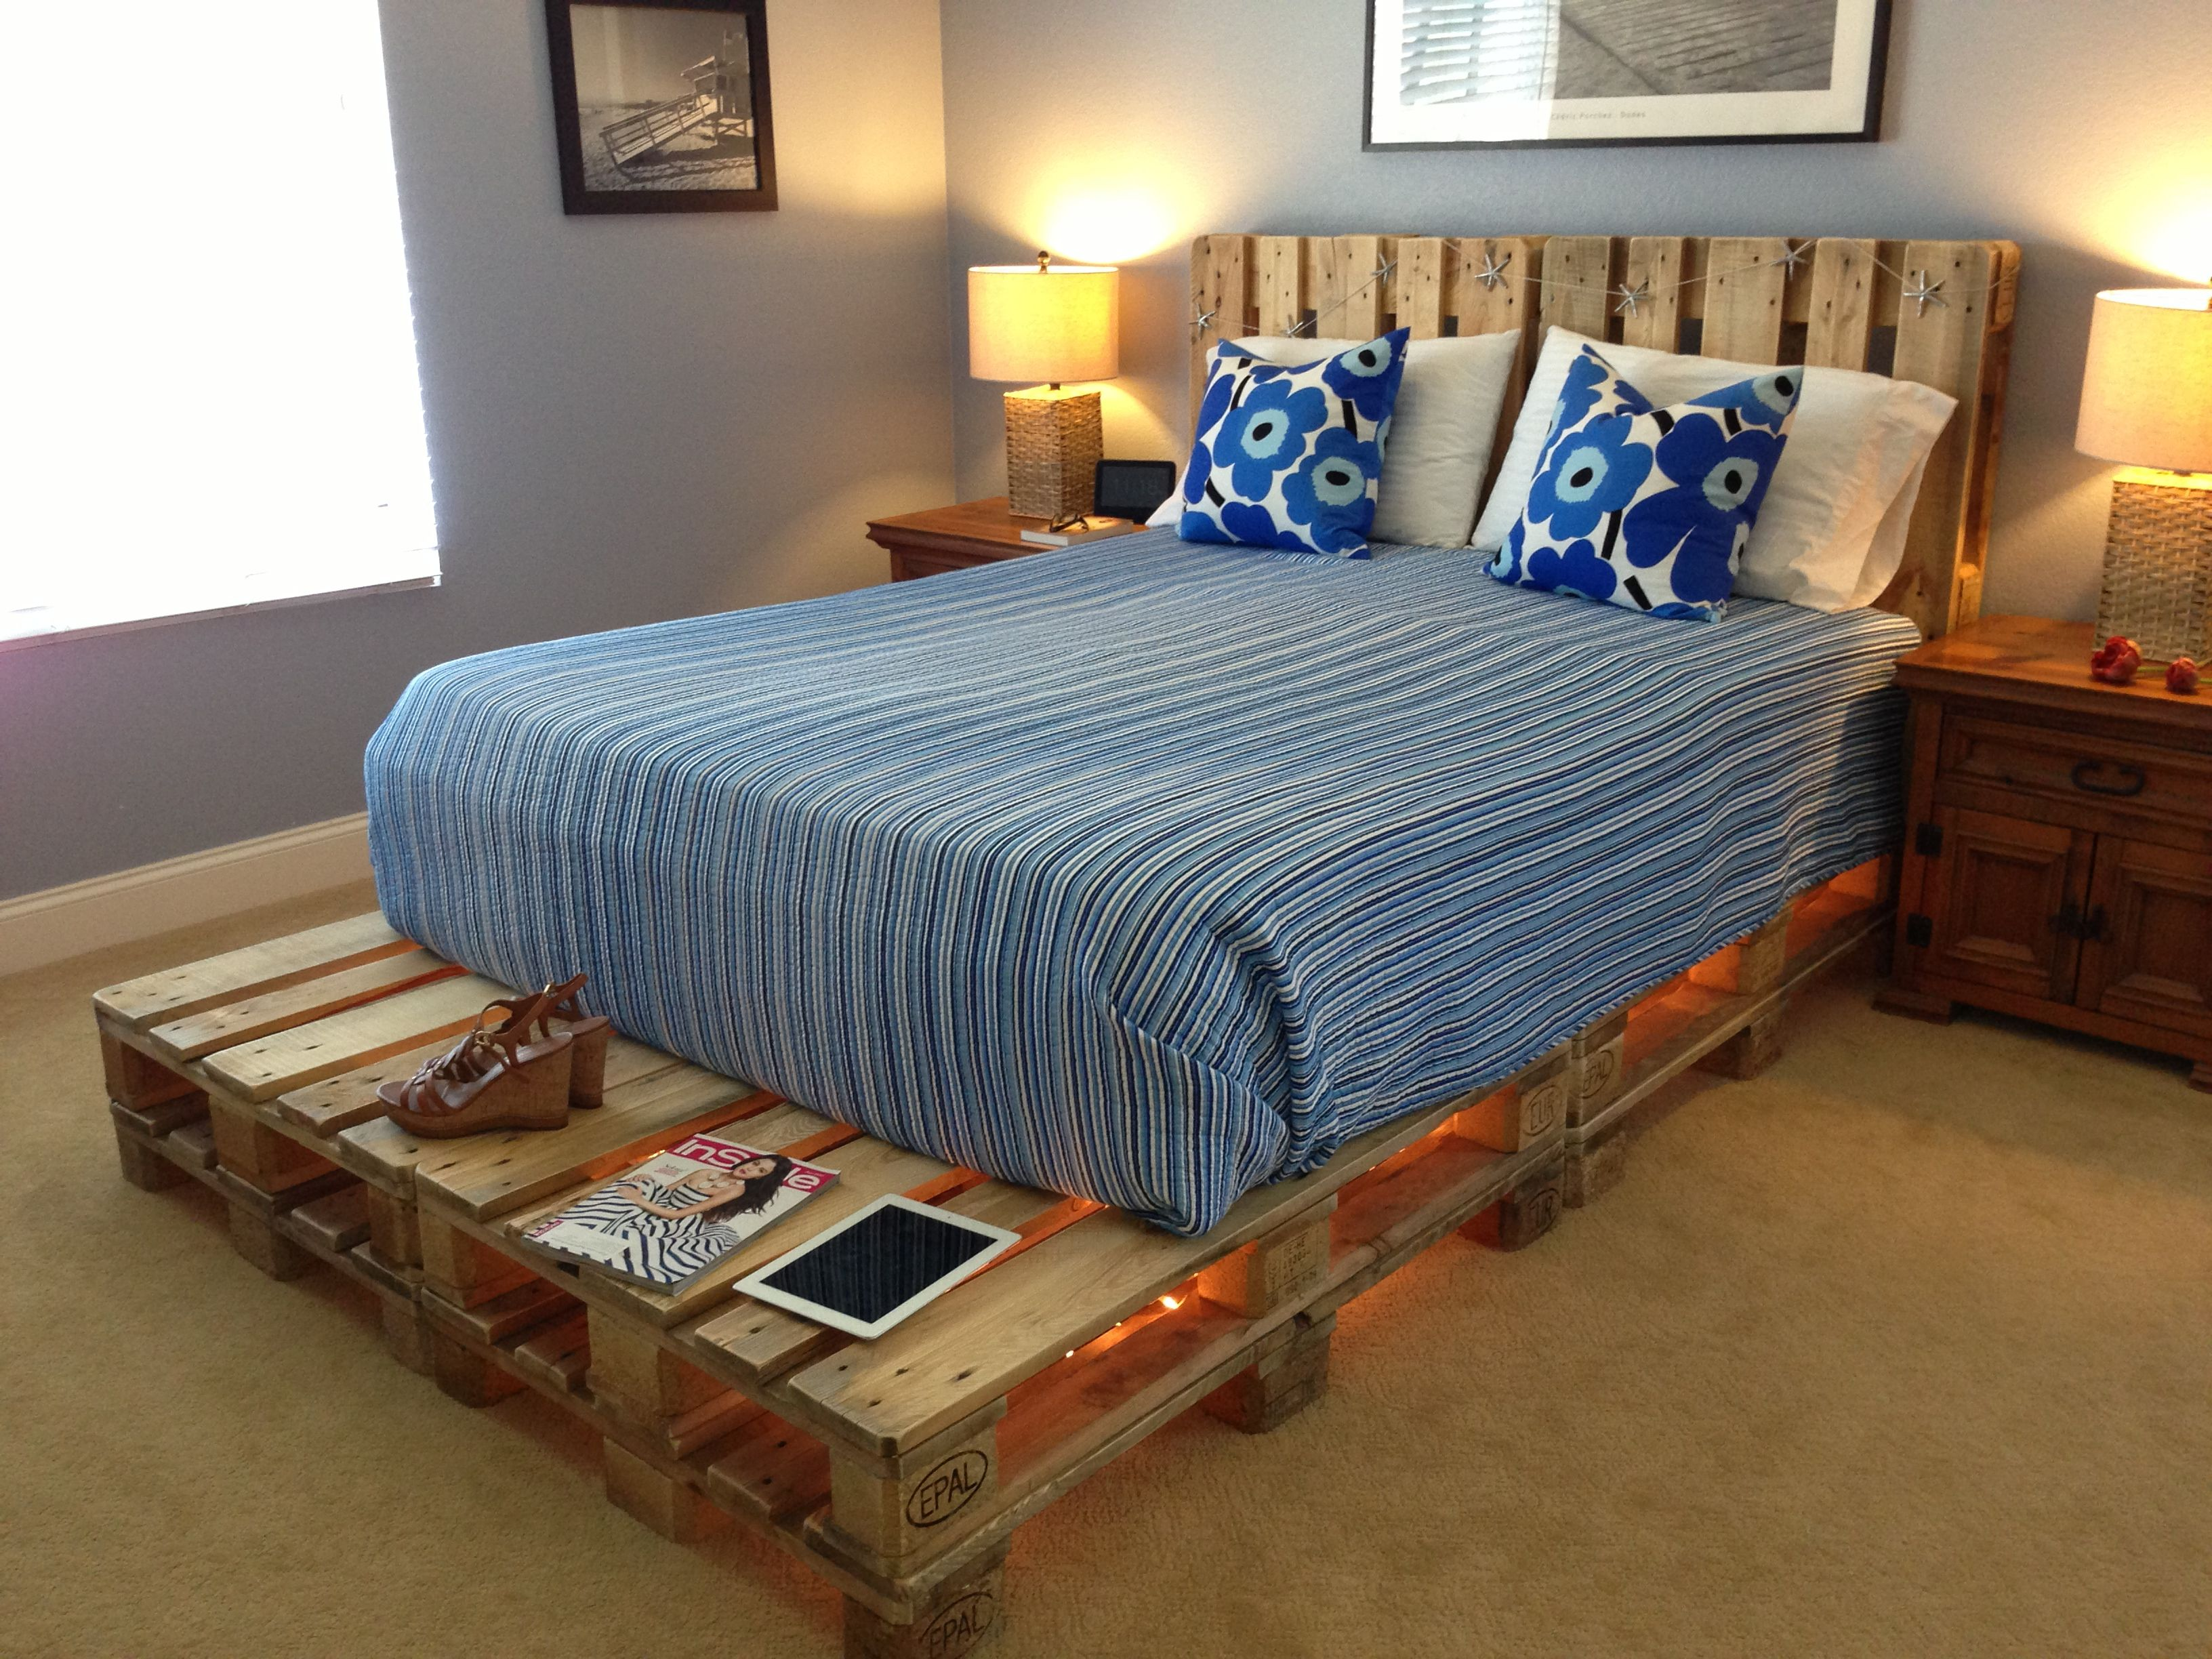 cool pallet bed steal pinterest. Black Bedroom Furniture Sets. Home Design Ideas